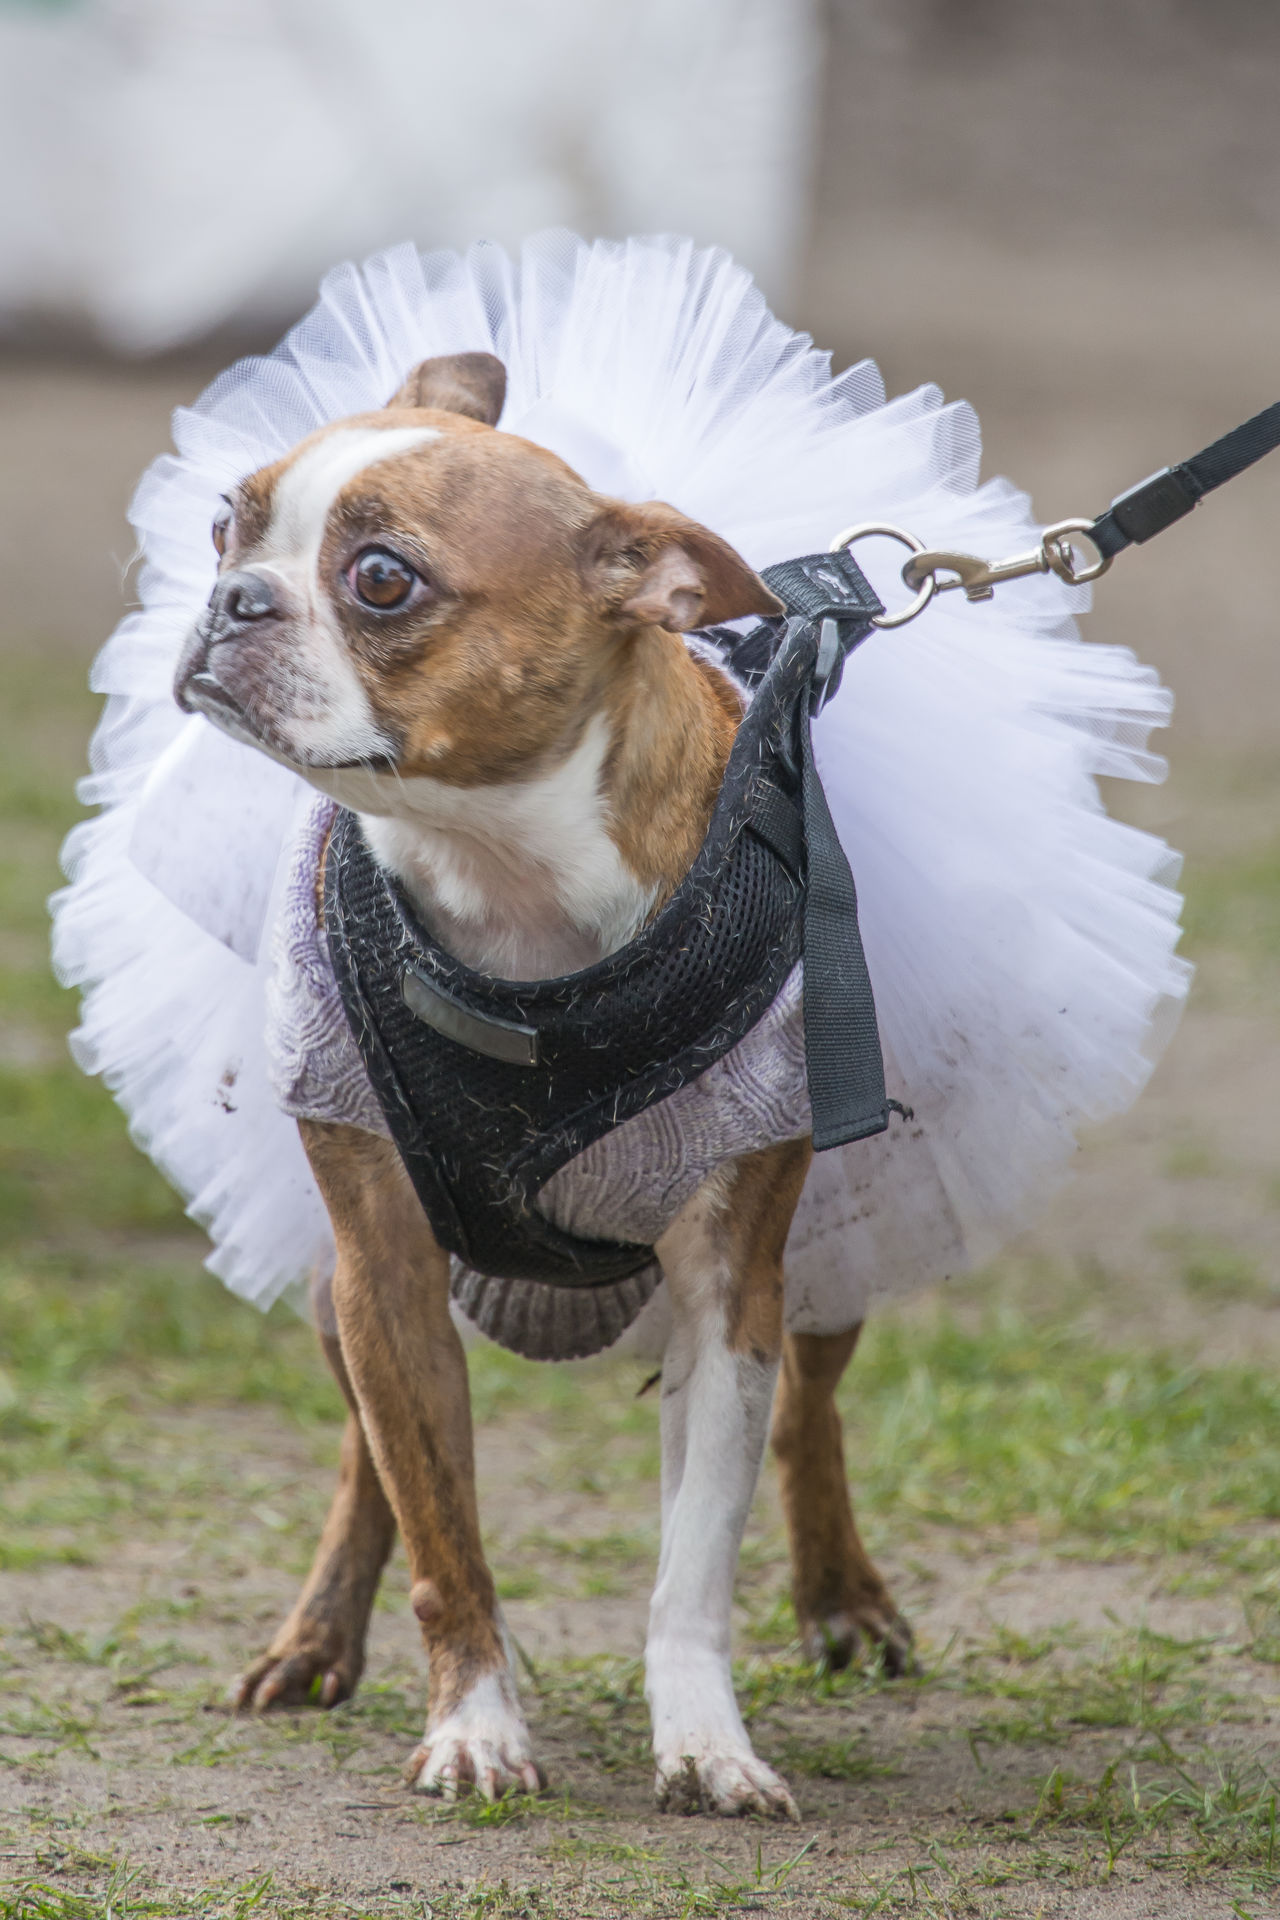 Animal Themes Close-up Day Dog Domestic Animals Mammal No People One Animal Outdoors Pets